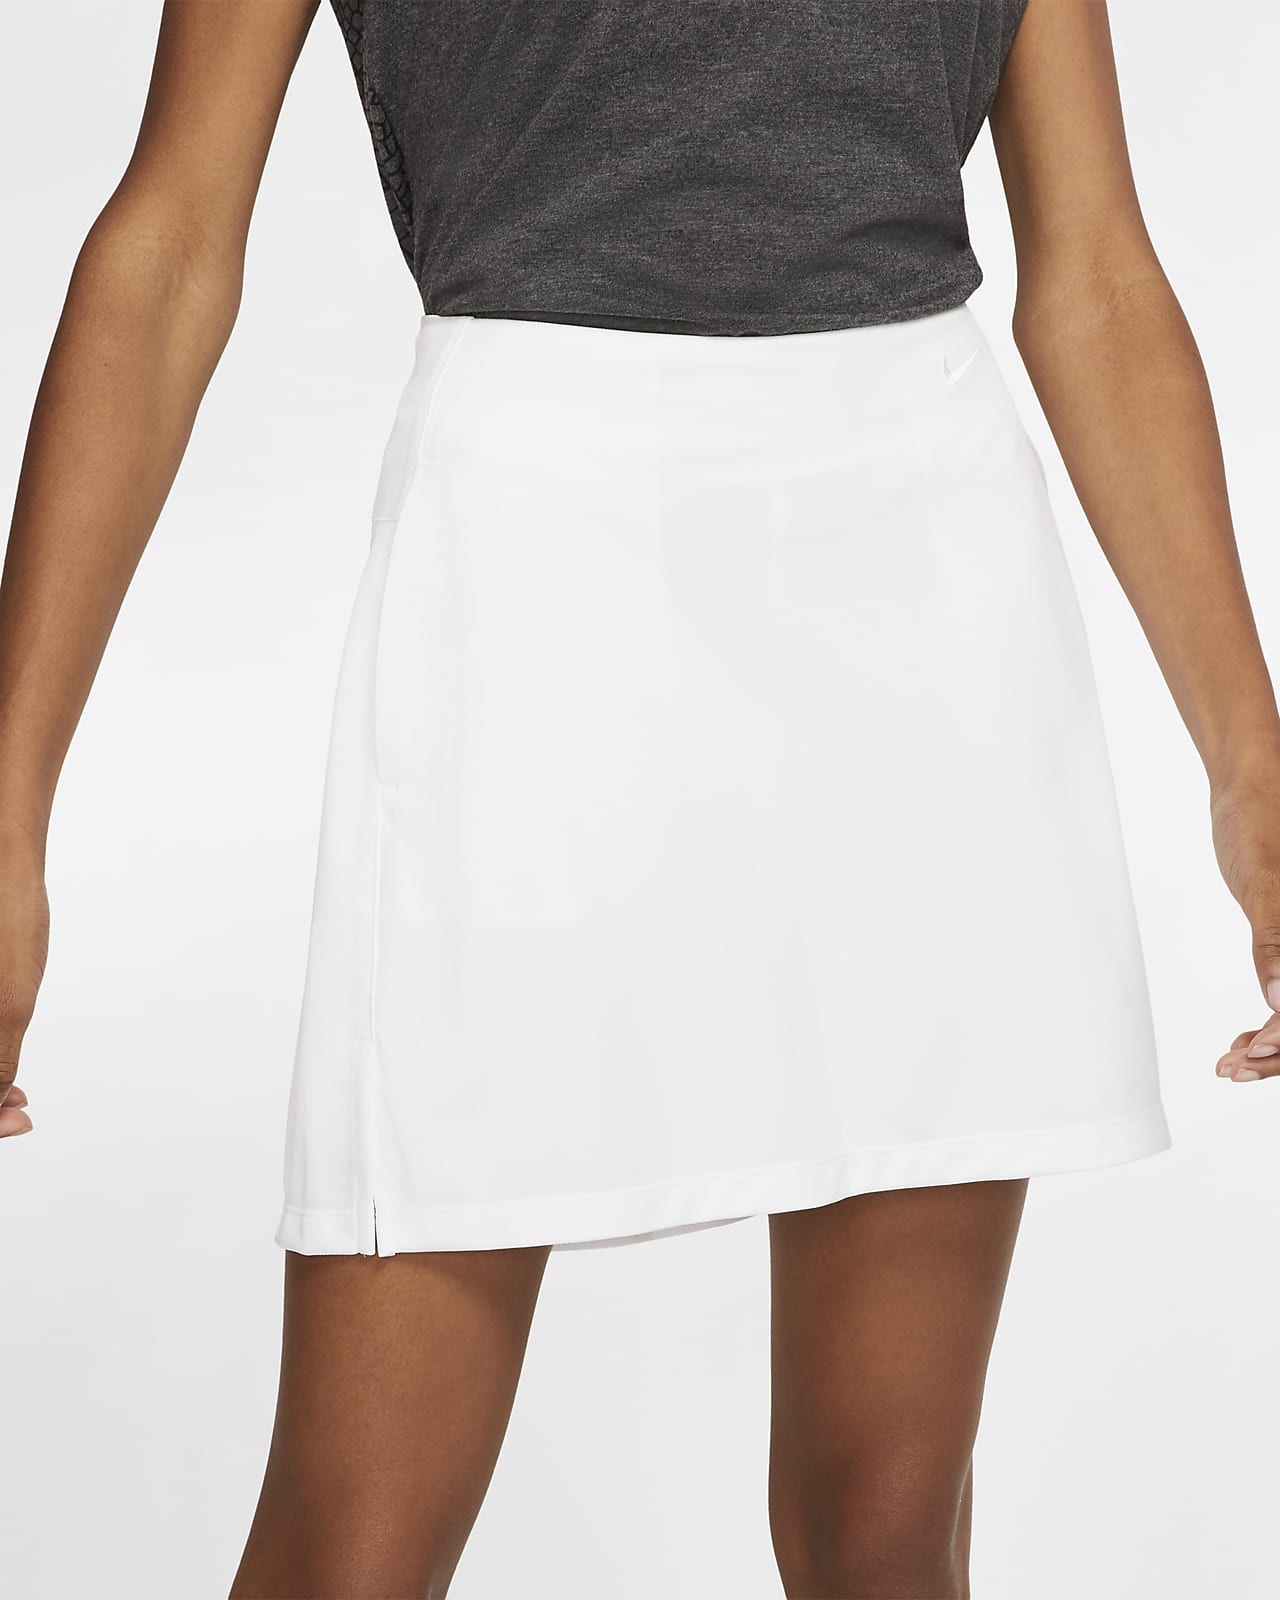 Nike Dri-FIT Victory Women's Golf Skirt